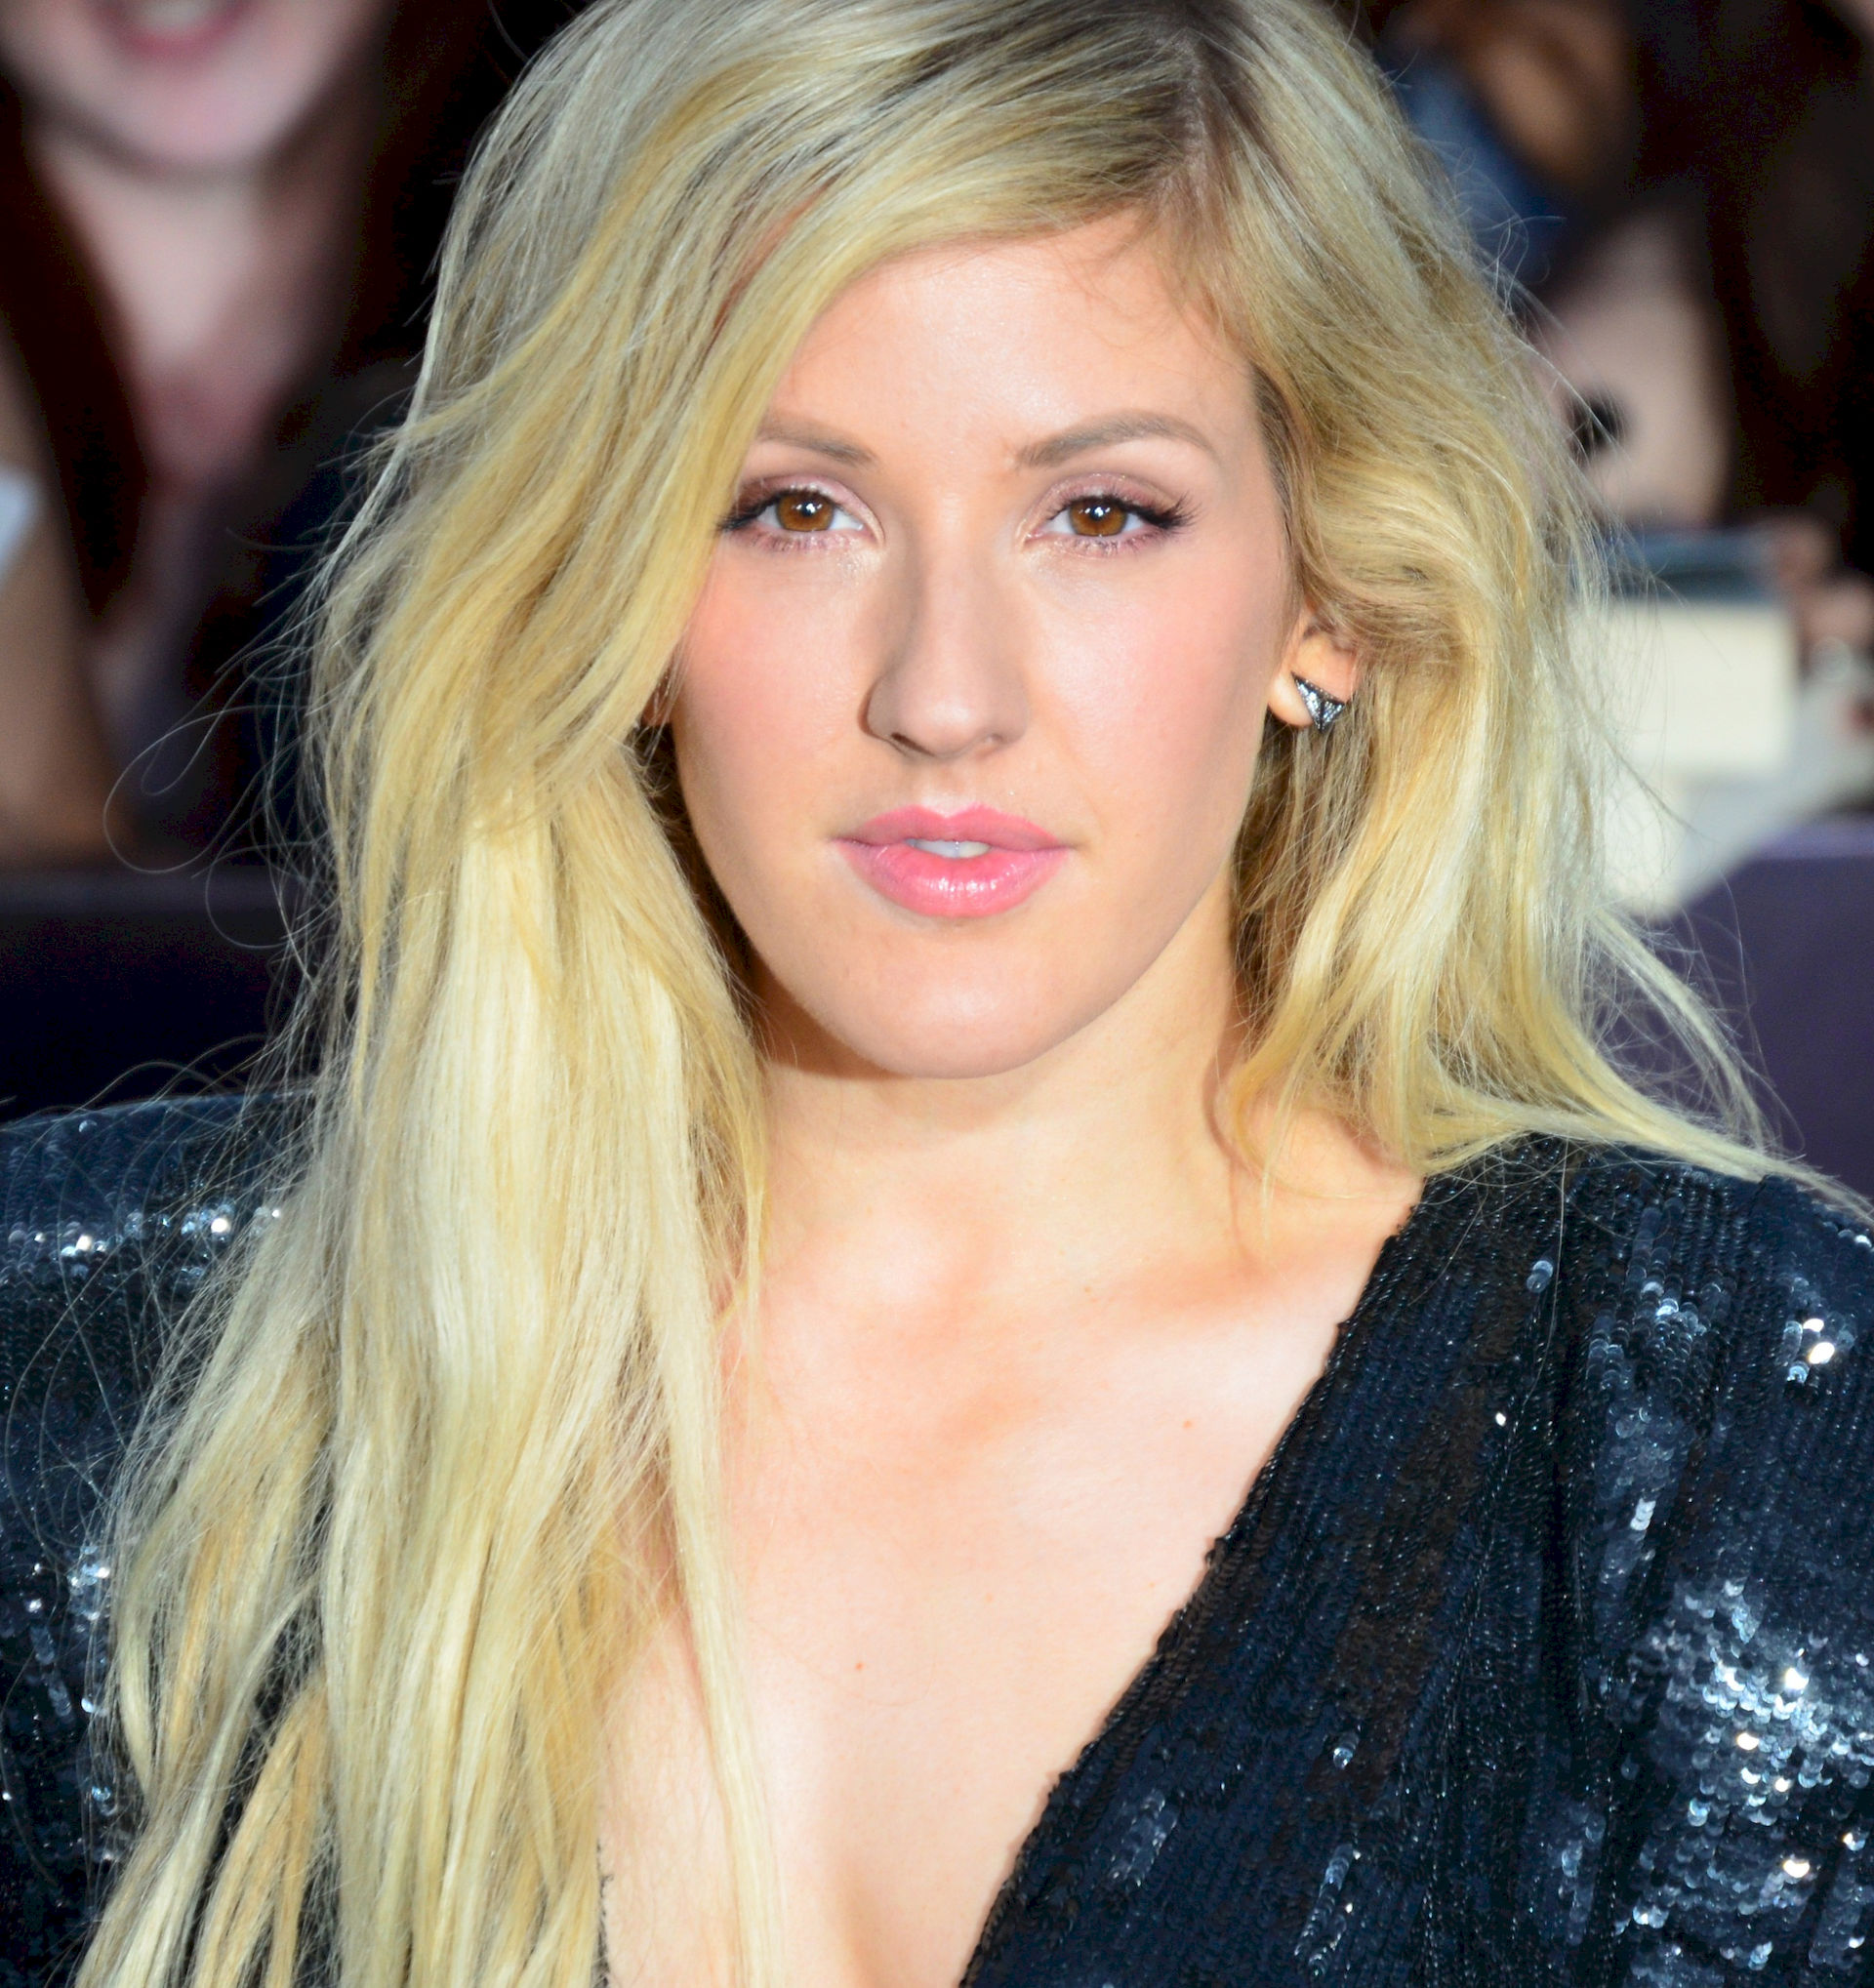 Photo of Ellie Goulding: English singer-songwriter and multi-instrumentalist